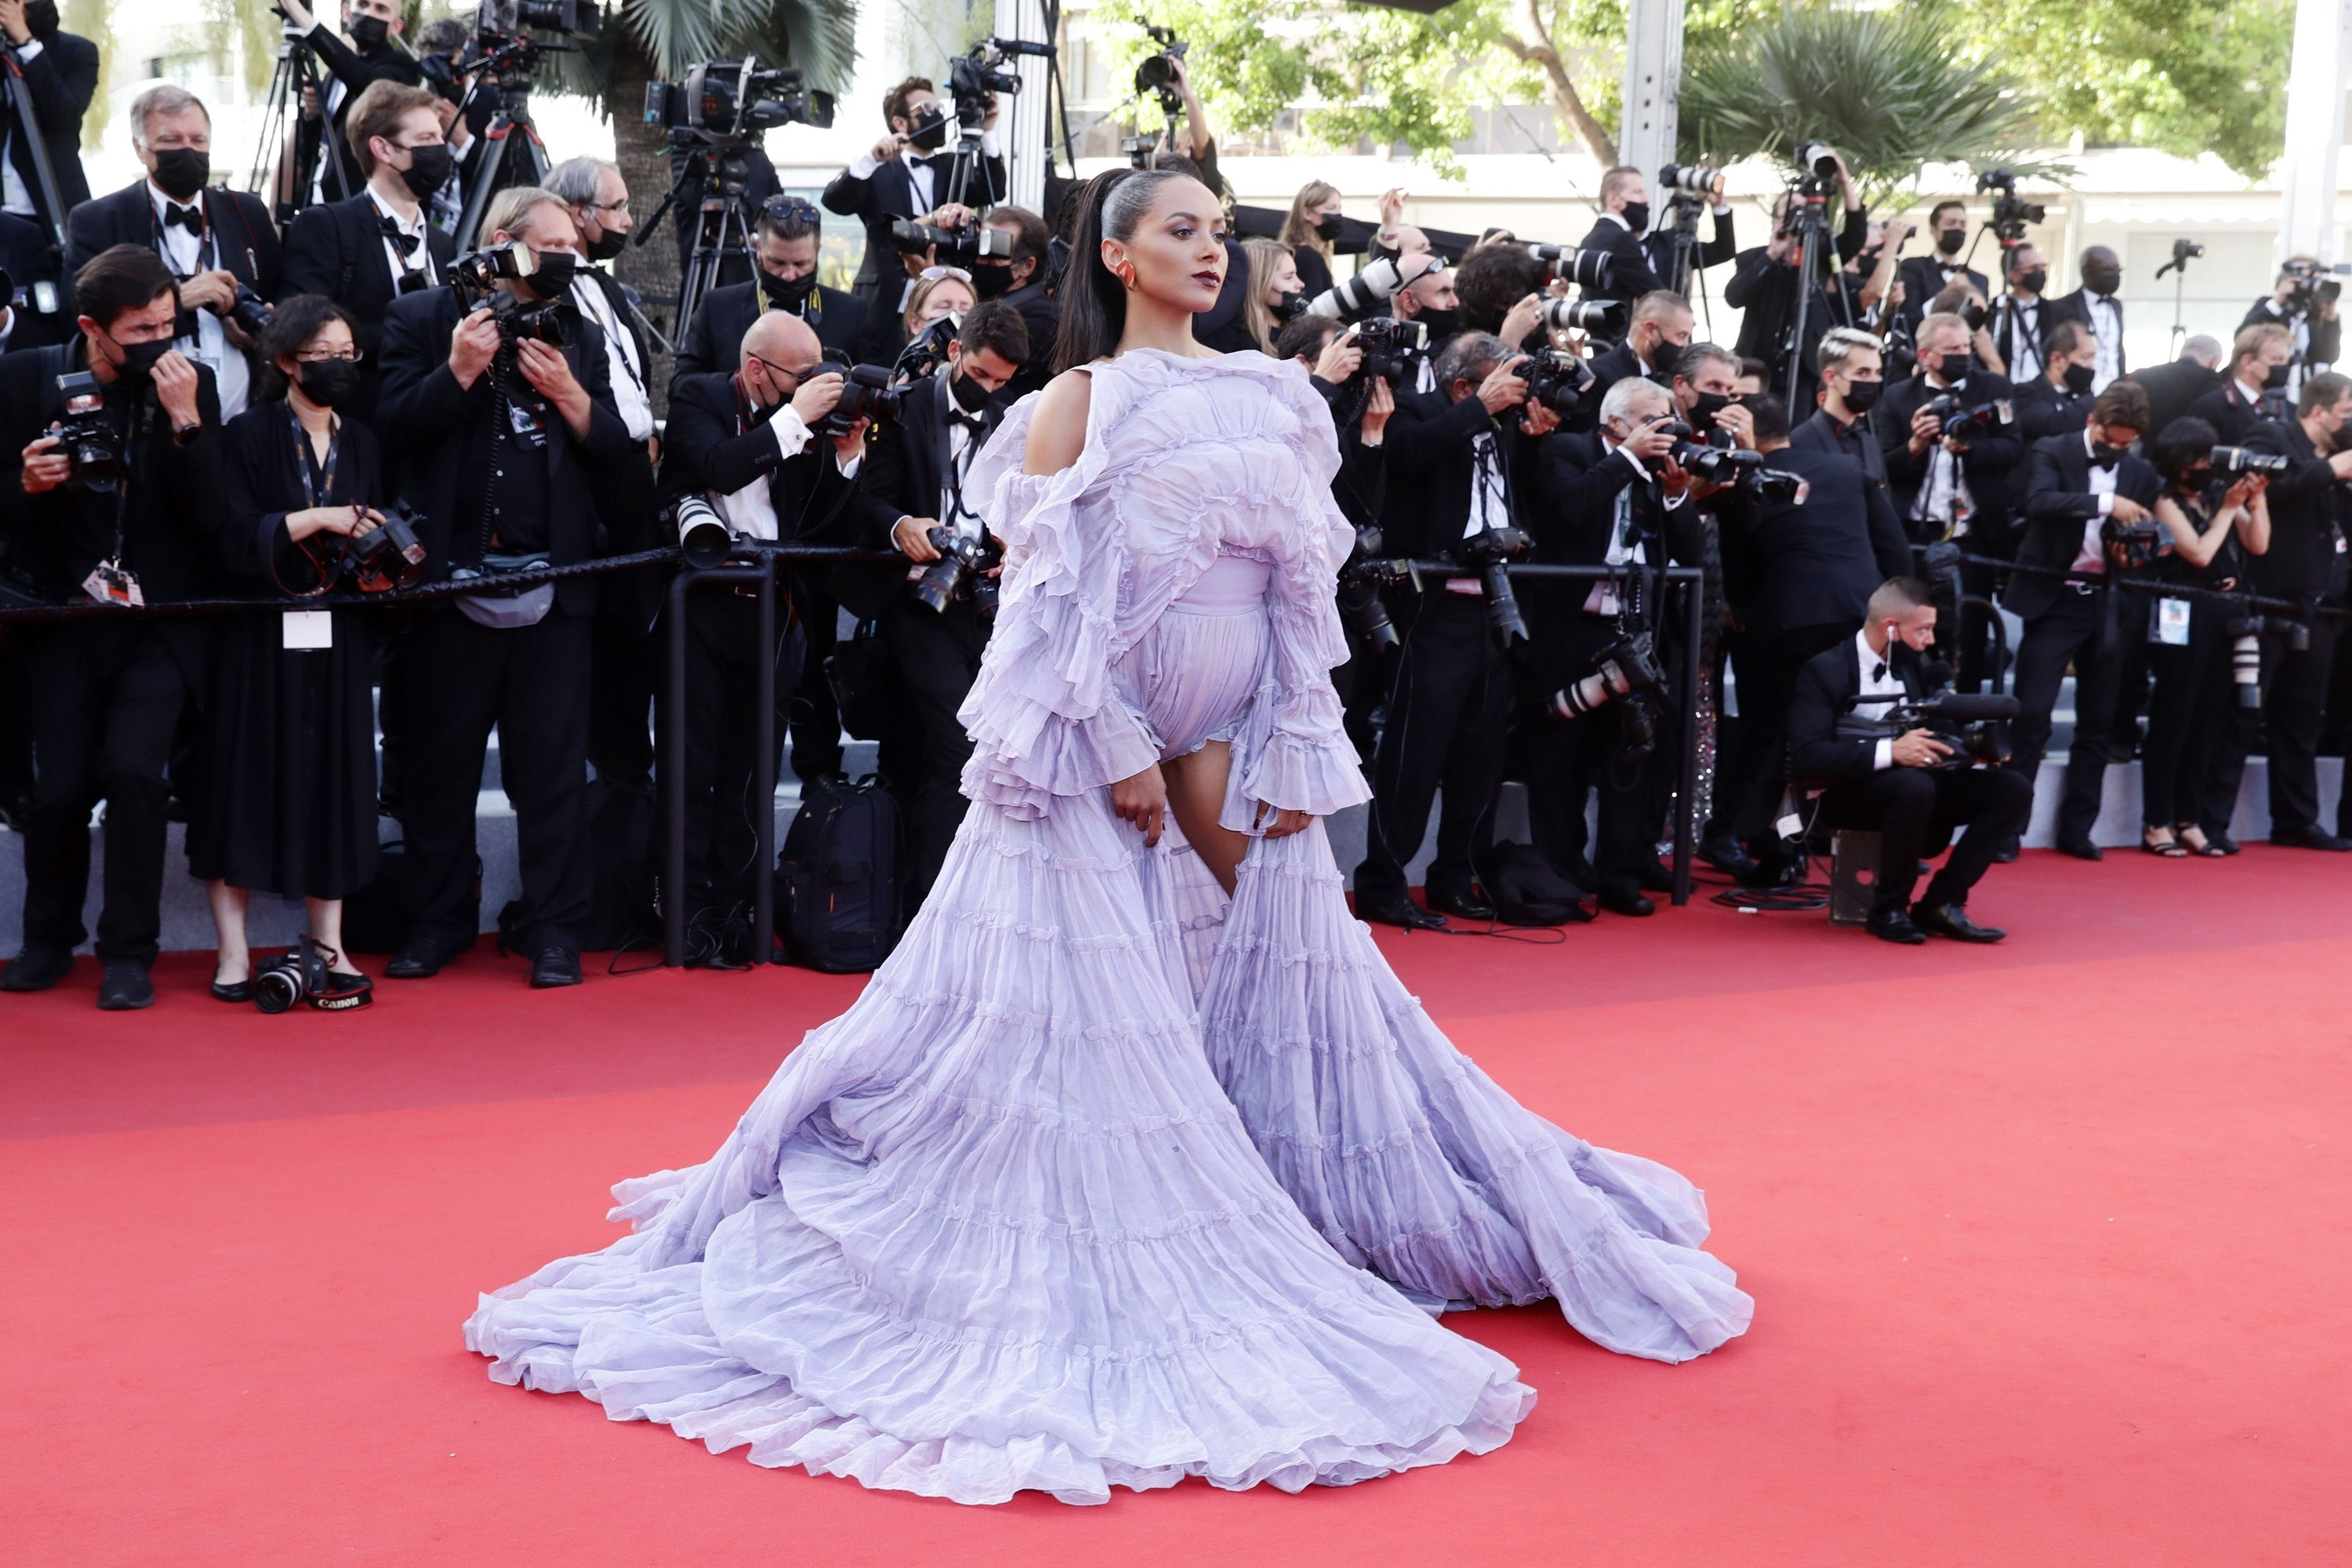 A woman stands in a very frilly purple dress at Cannes